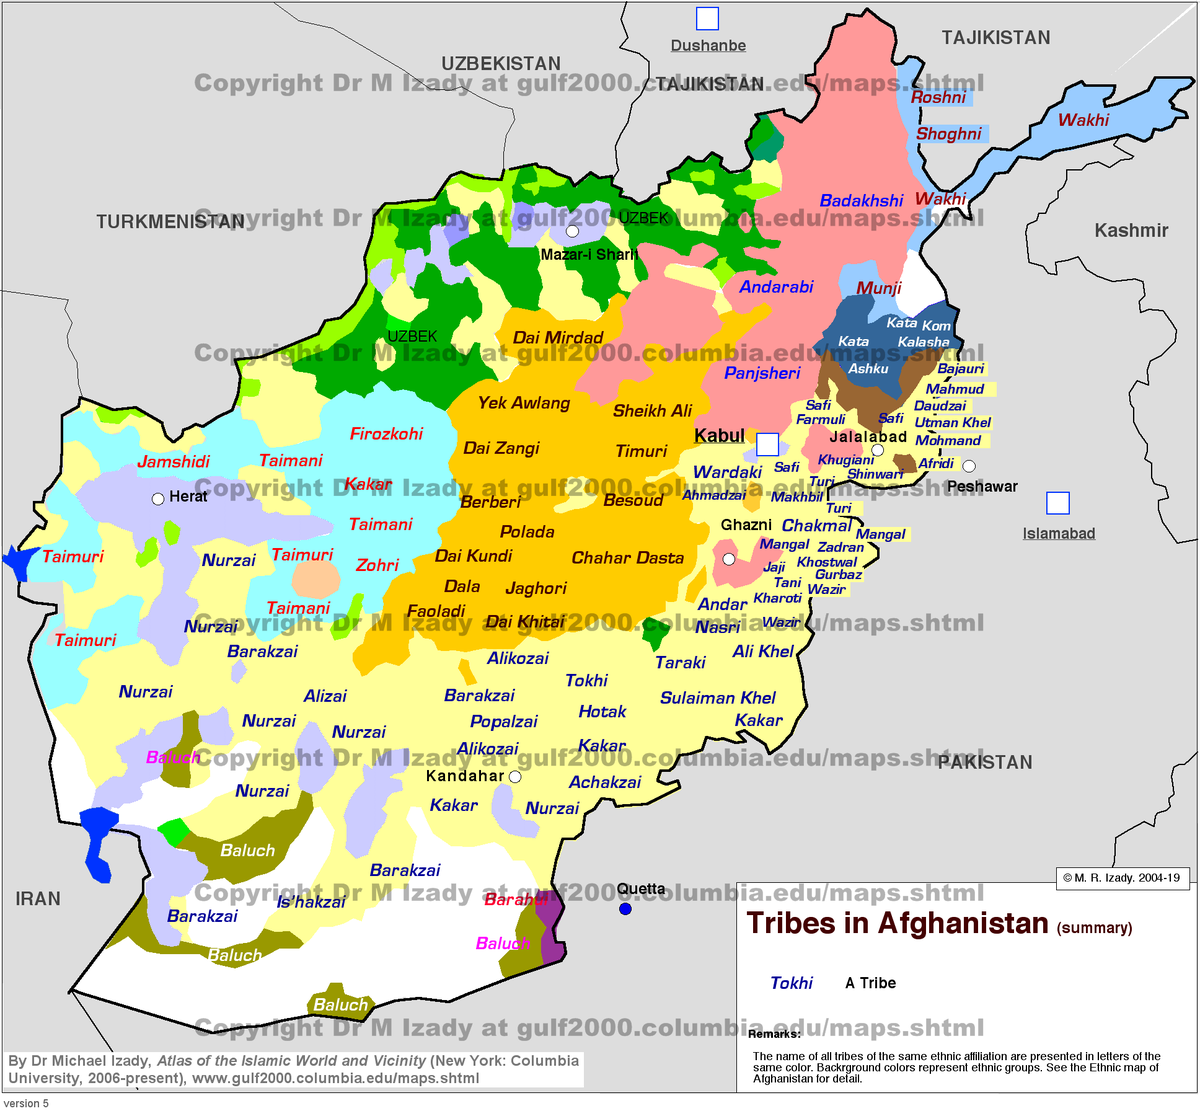 Islamic Republic of Afghanistan #Afghanistan whose President must be #Muslim. SEE Islamic Republic of Afghanistan #Constitution.  #Afghan #Tribes See Map What #US don't know about #Islam #Taliban could fill a #Quran/#Koran #Sunnah and #Hadith  #AfghanExit